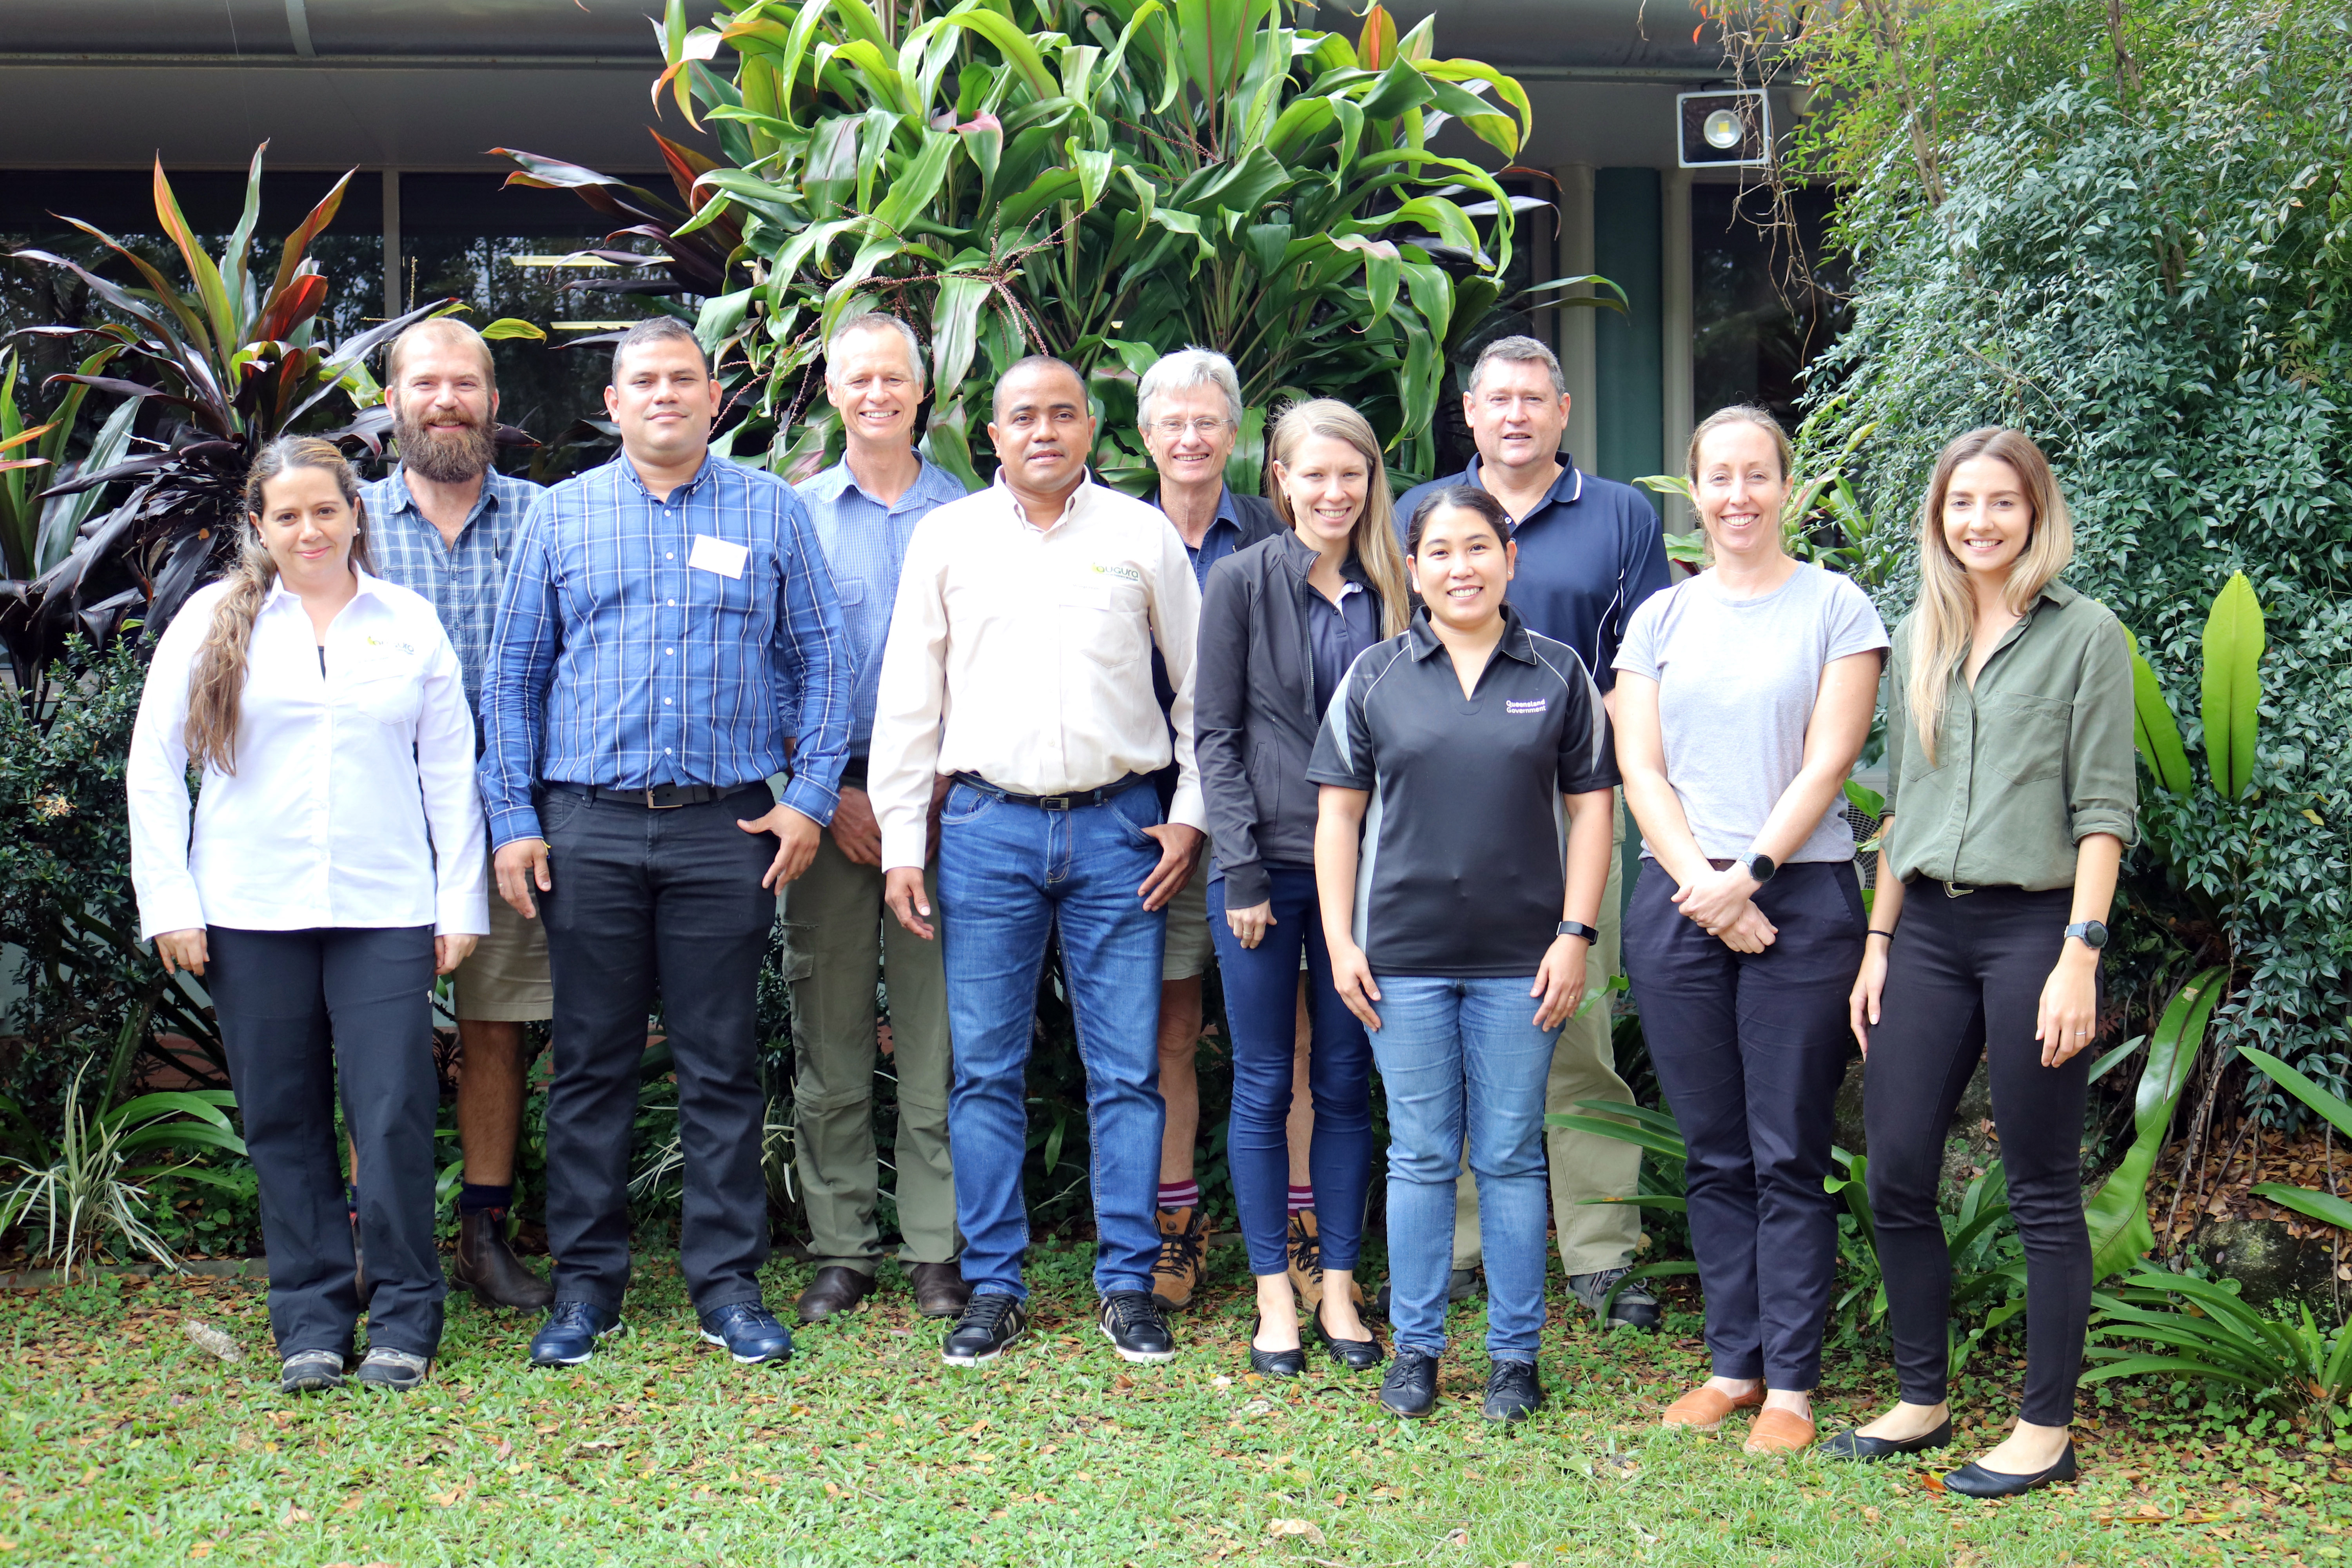 All front left: Ms. Marcela Cadavid, Director Cenibanano, Augura, Mr. Antonio Jose Gonzalez, ASBAMA and Mr. Jorge Vargas, Researcher Cenibanano, Augura with the team from DAF at the South Johnstone Centre for Wet Tropics.